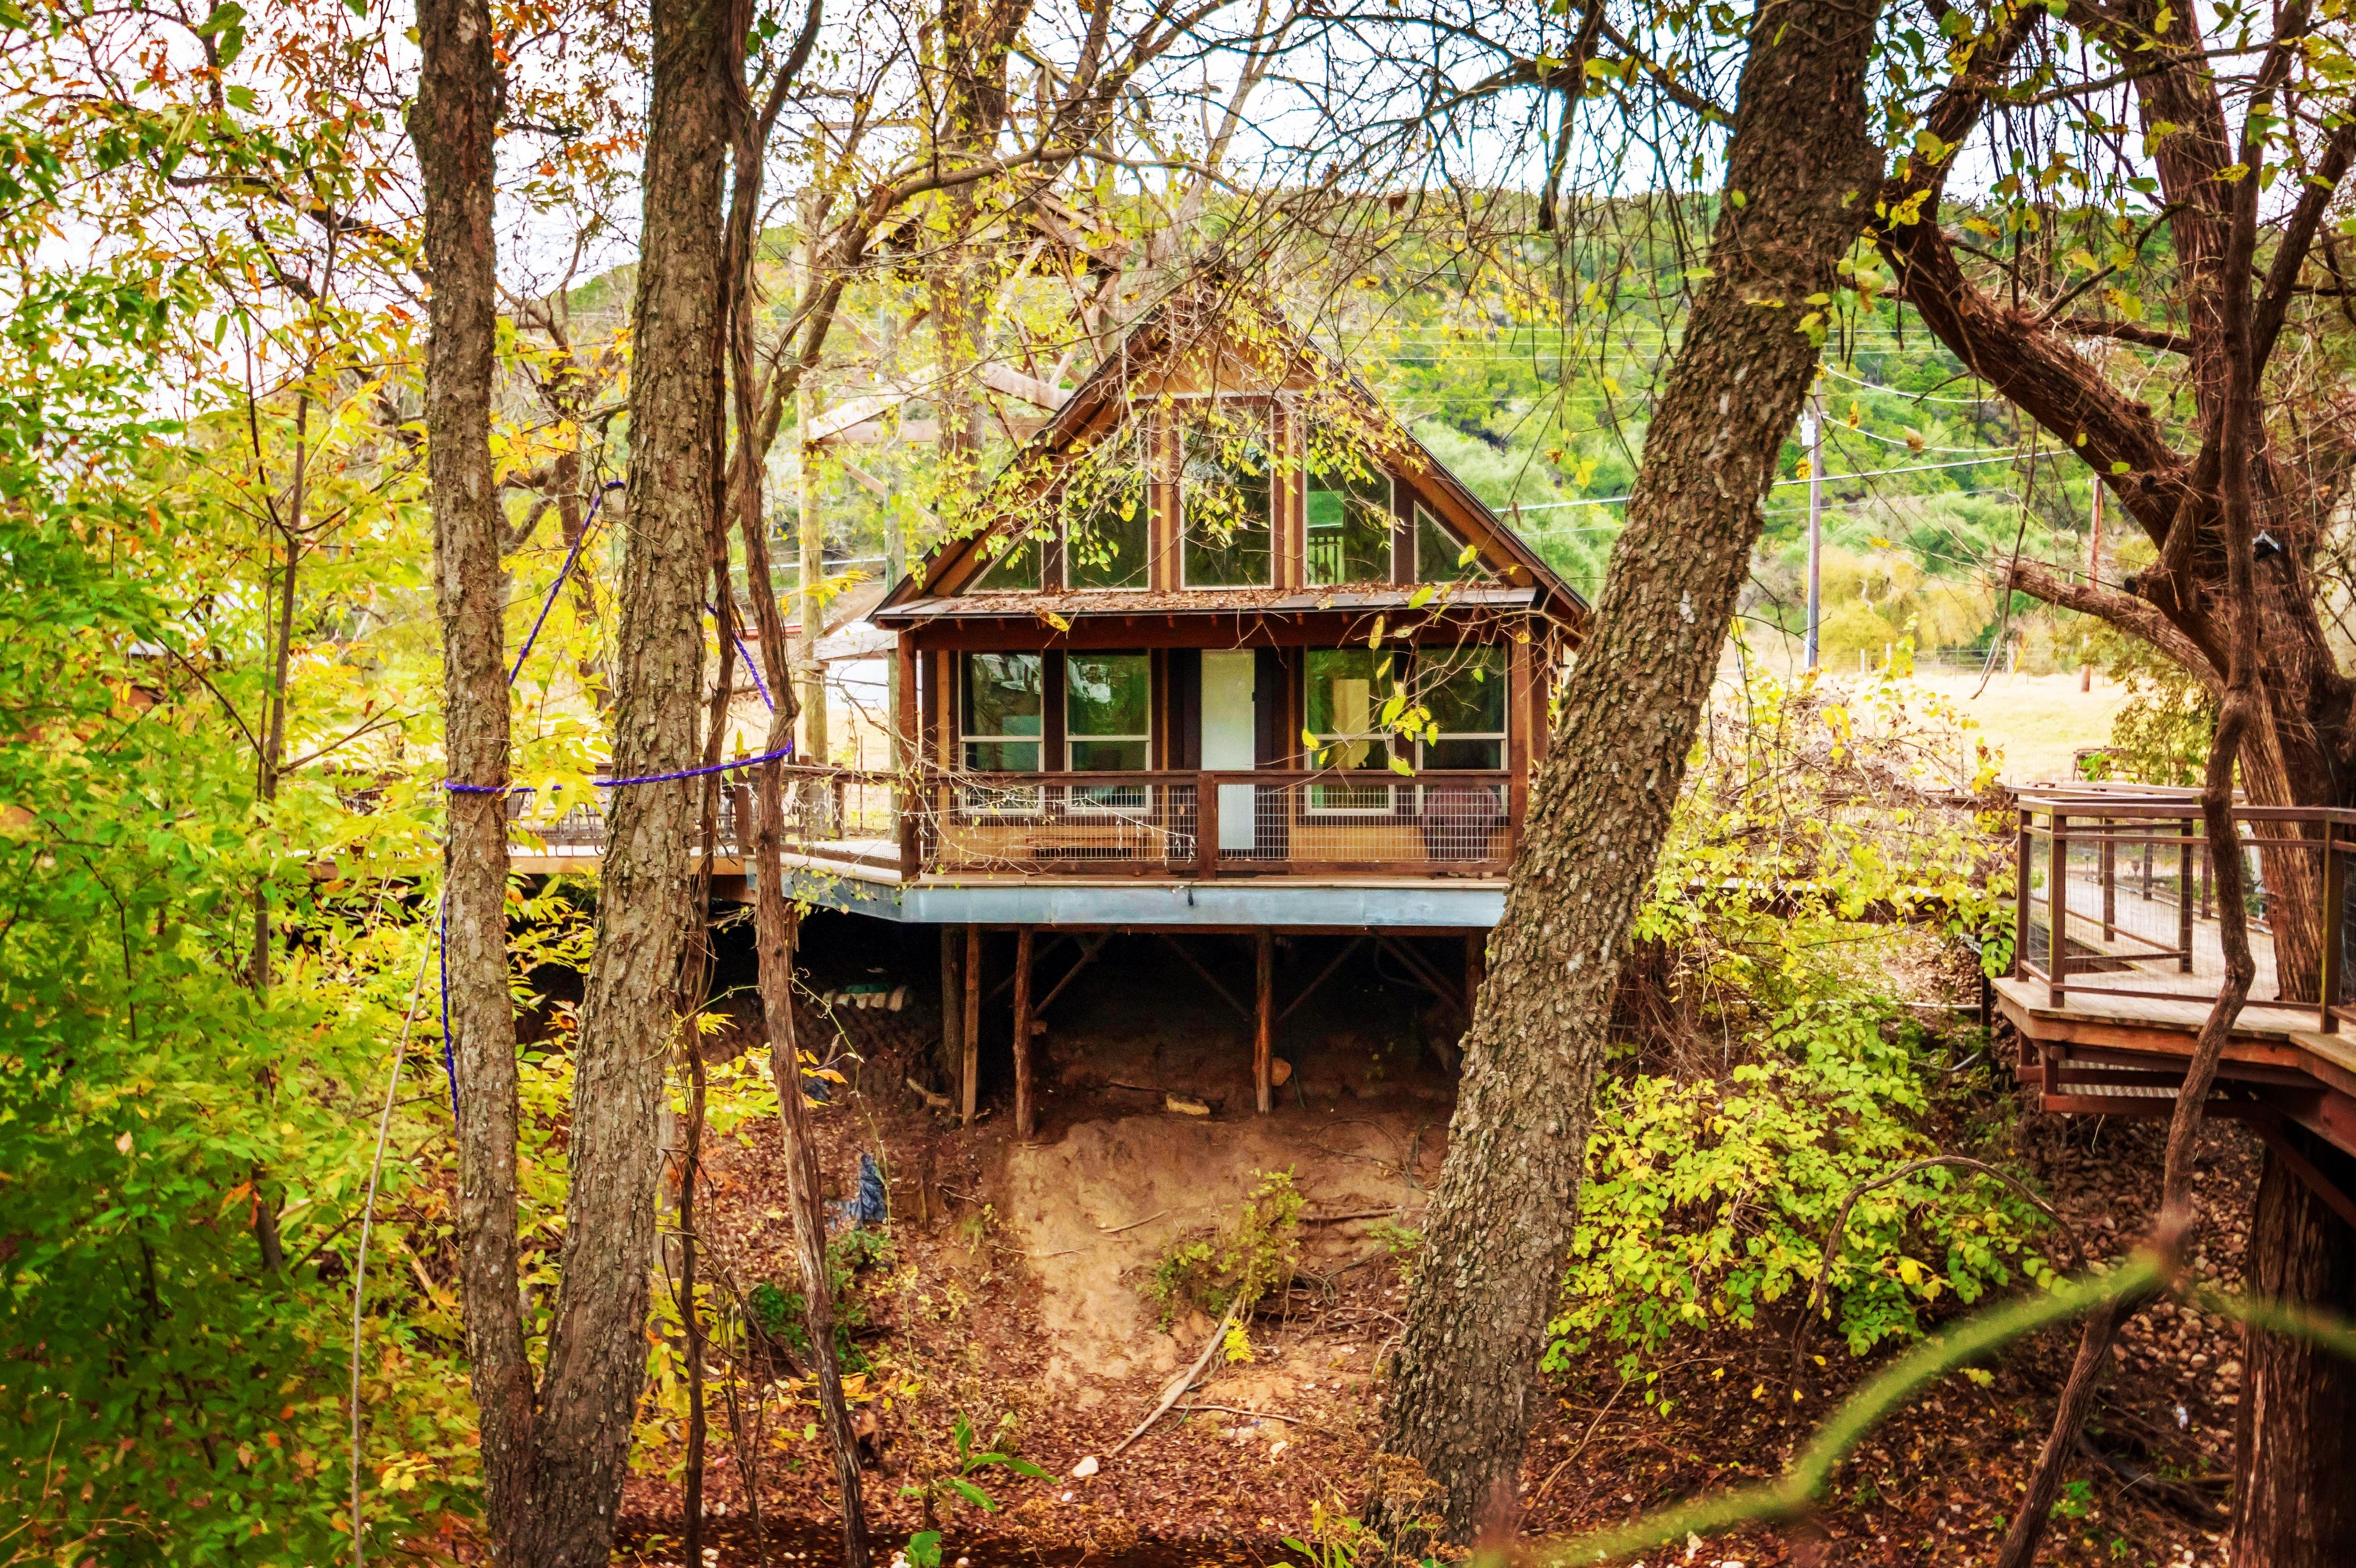 River Rd Treehouses Whippoorwill Haus Best Texas Travel